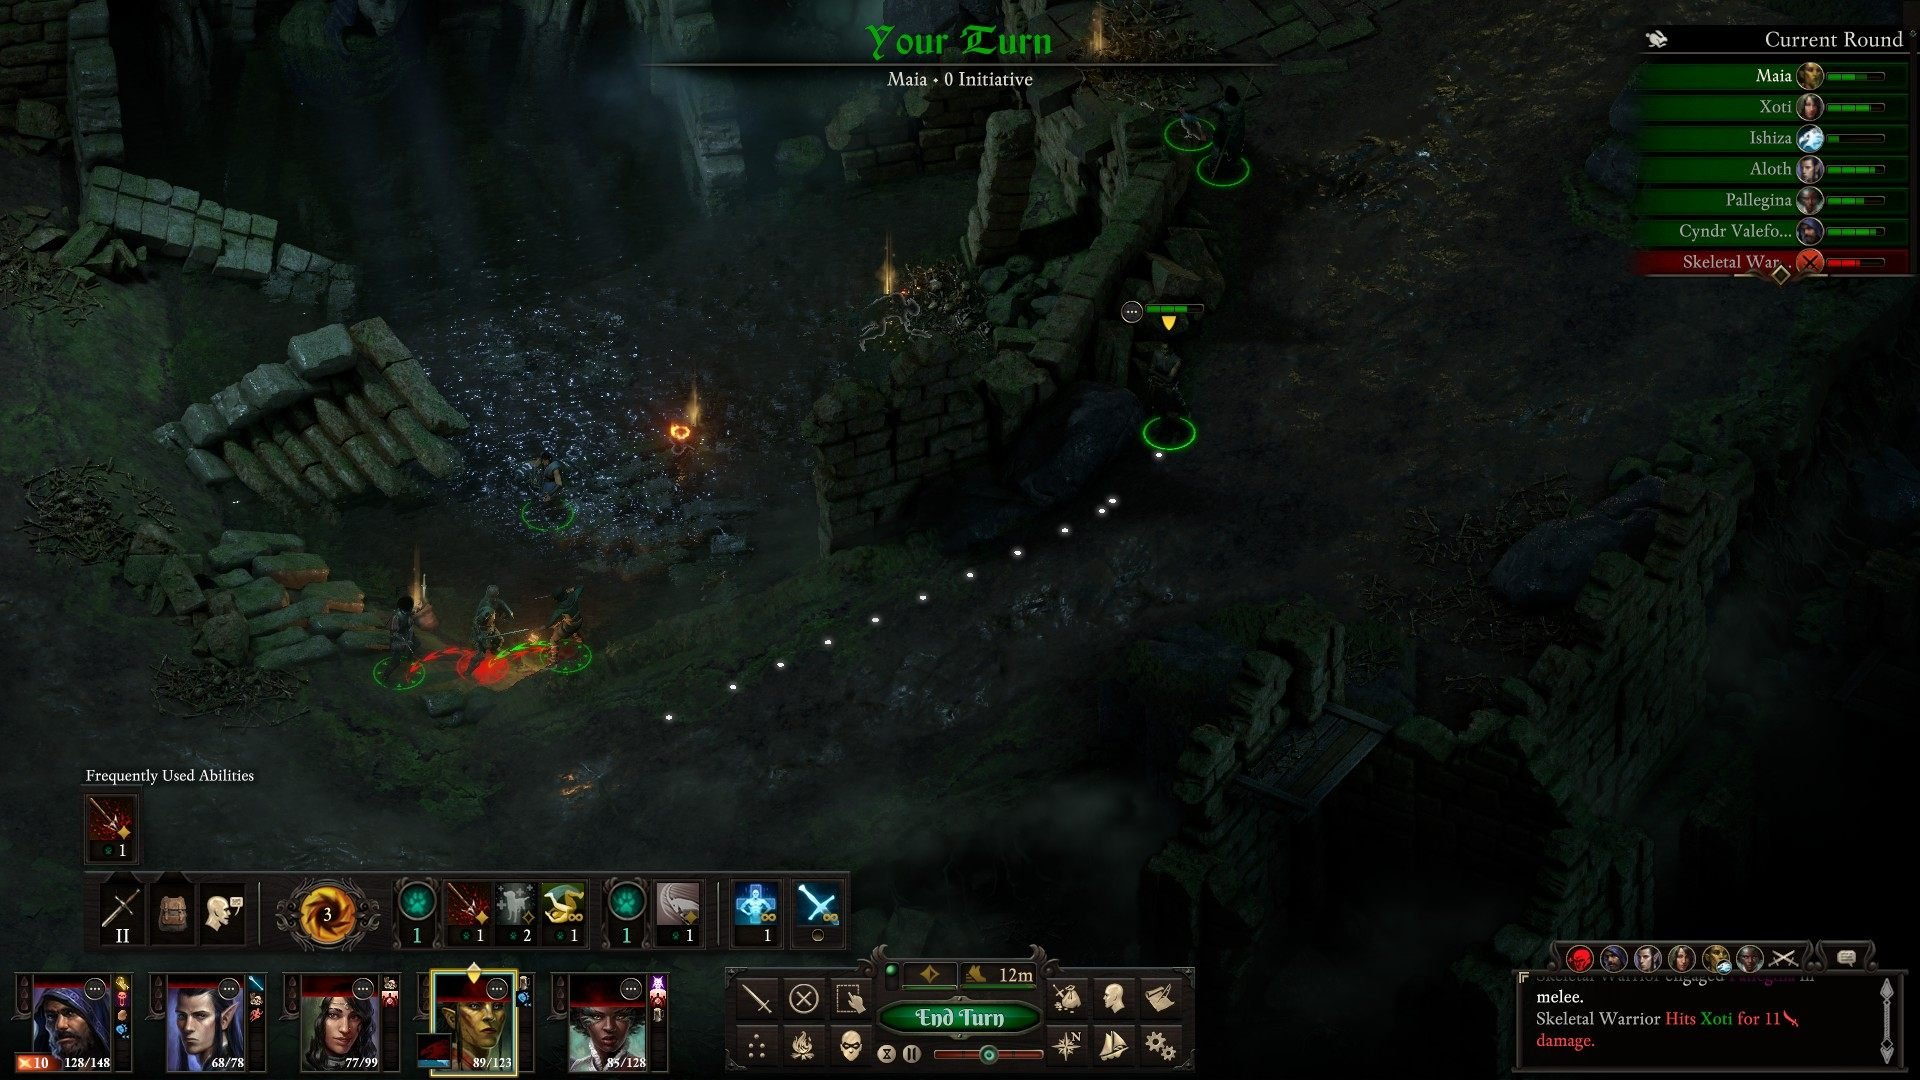 Pillars of Eternity 2: Deadfire turn-based combat impressions